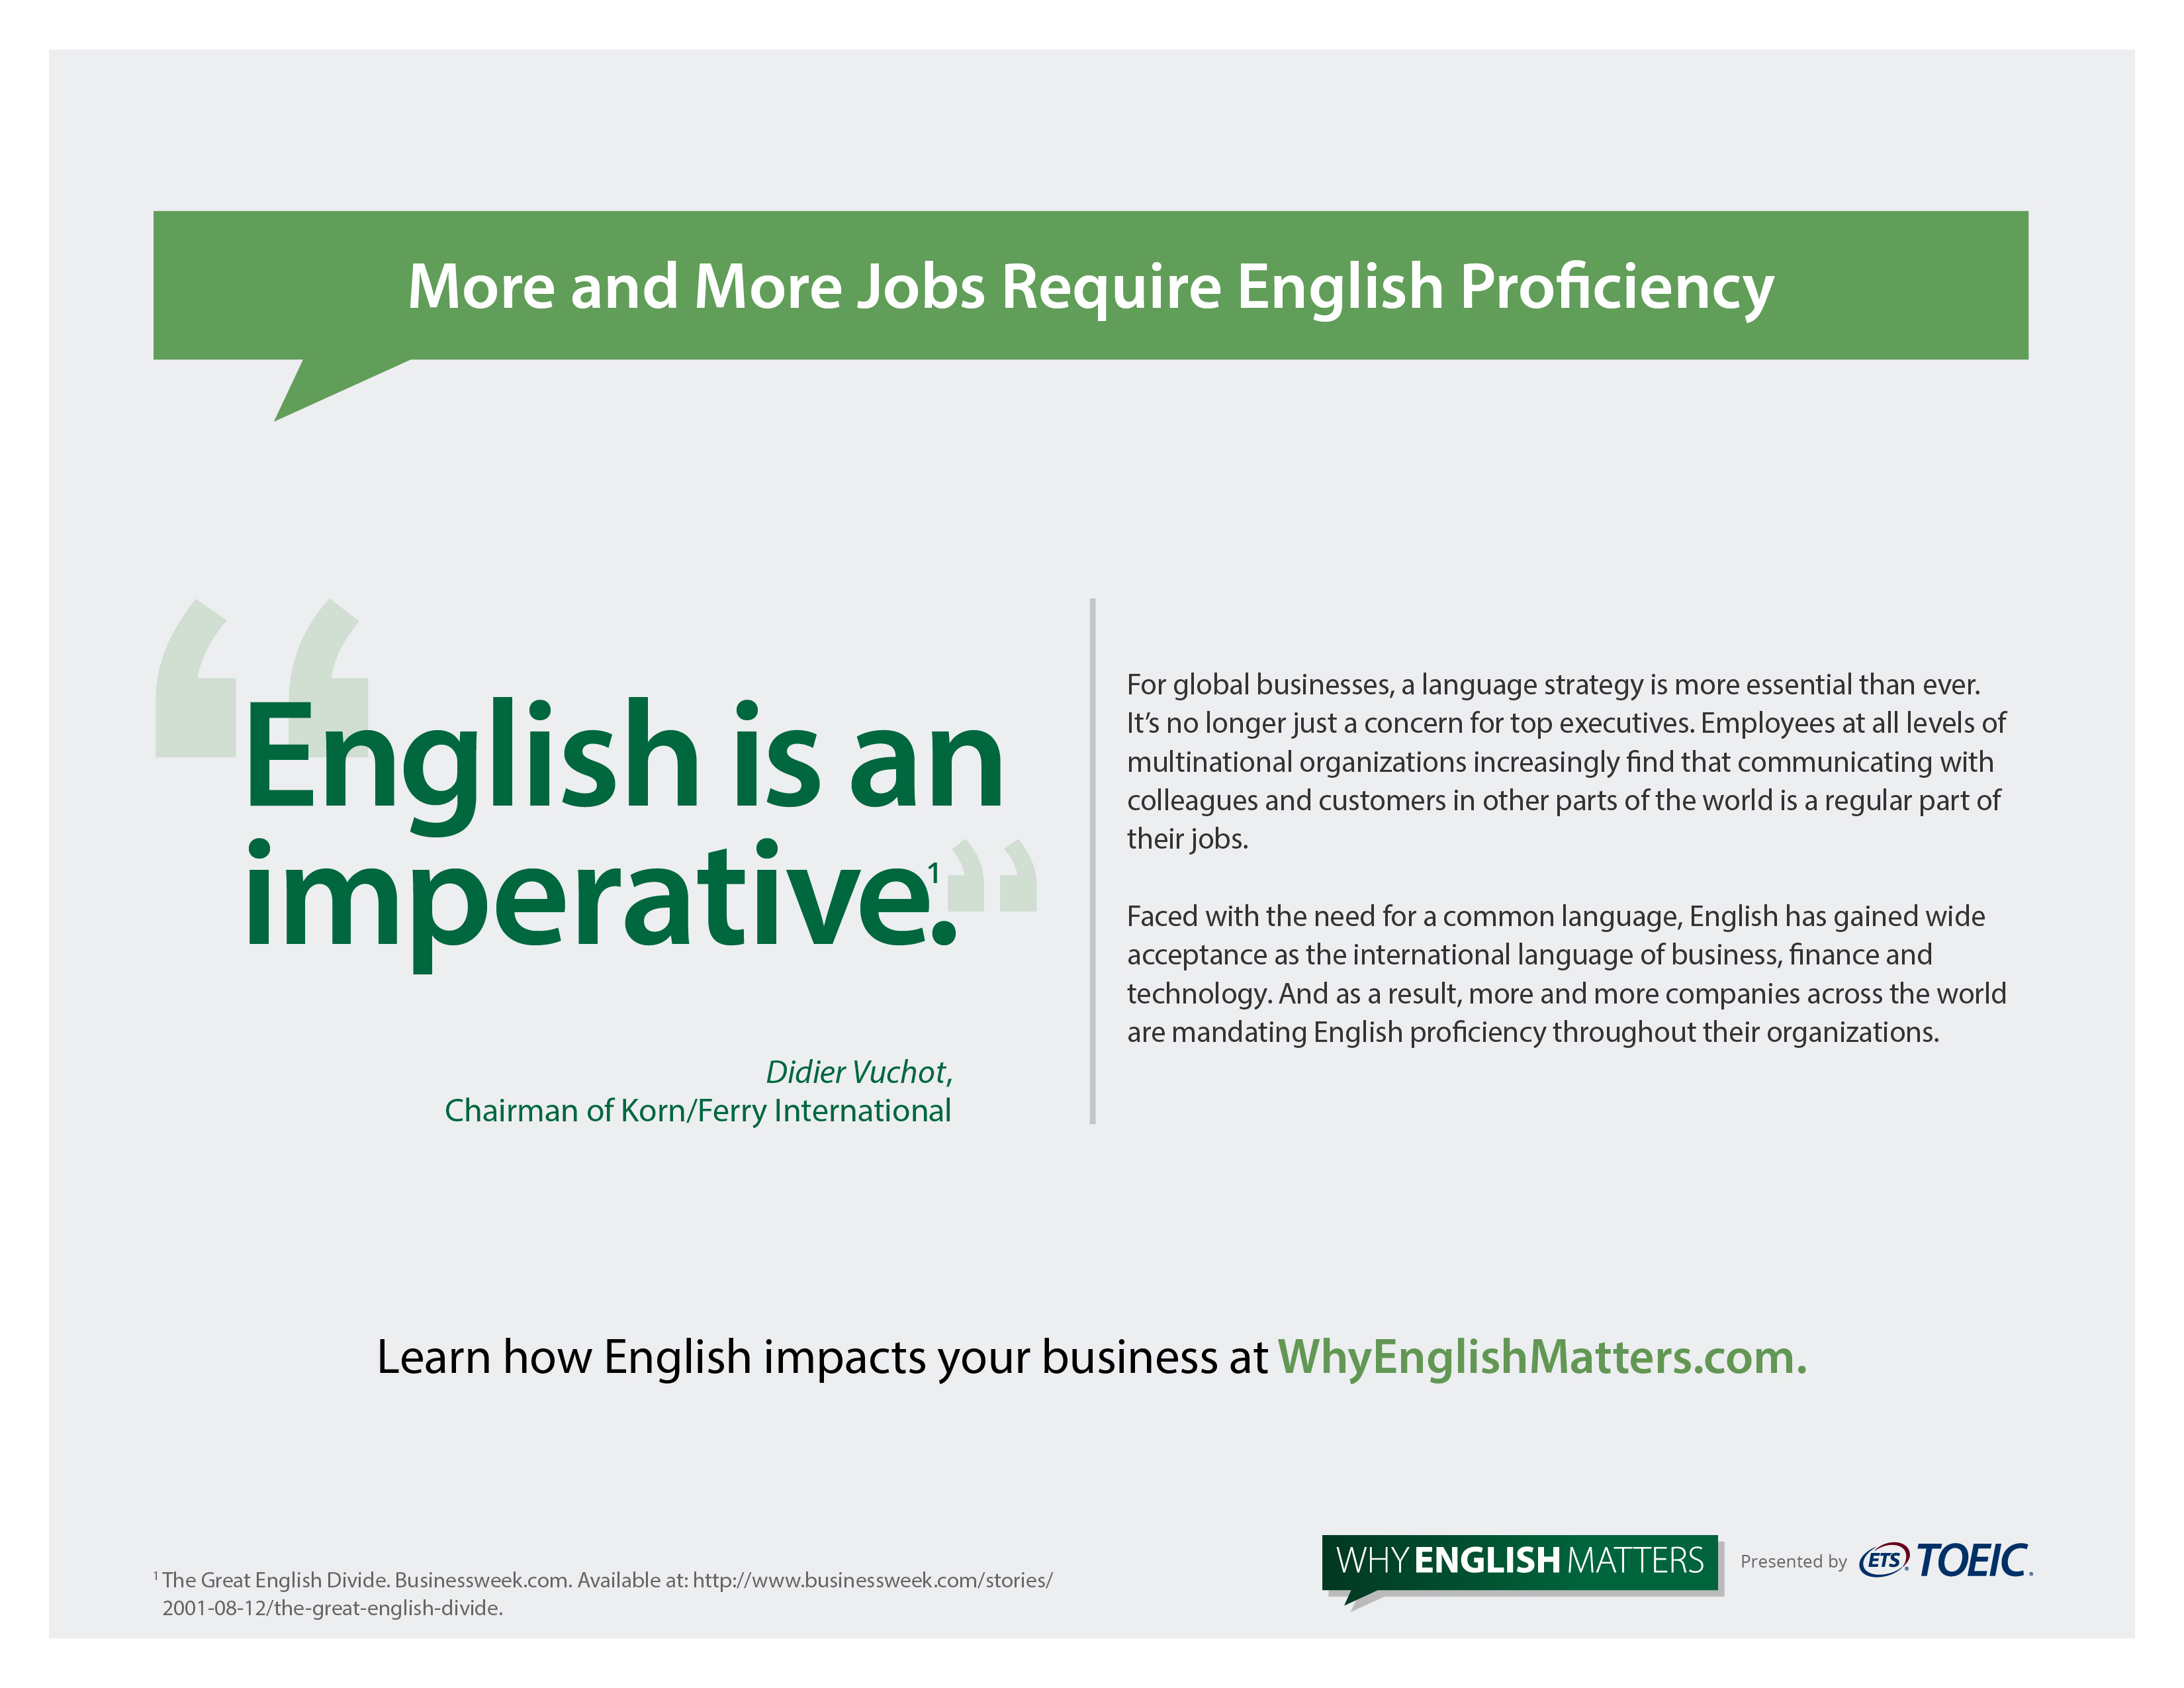 More And More Jobs Require English Proficiency